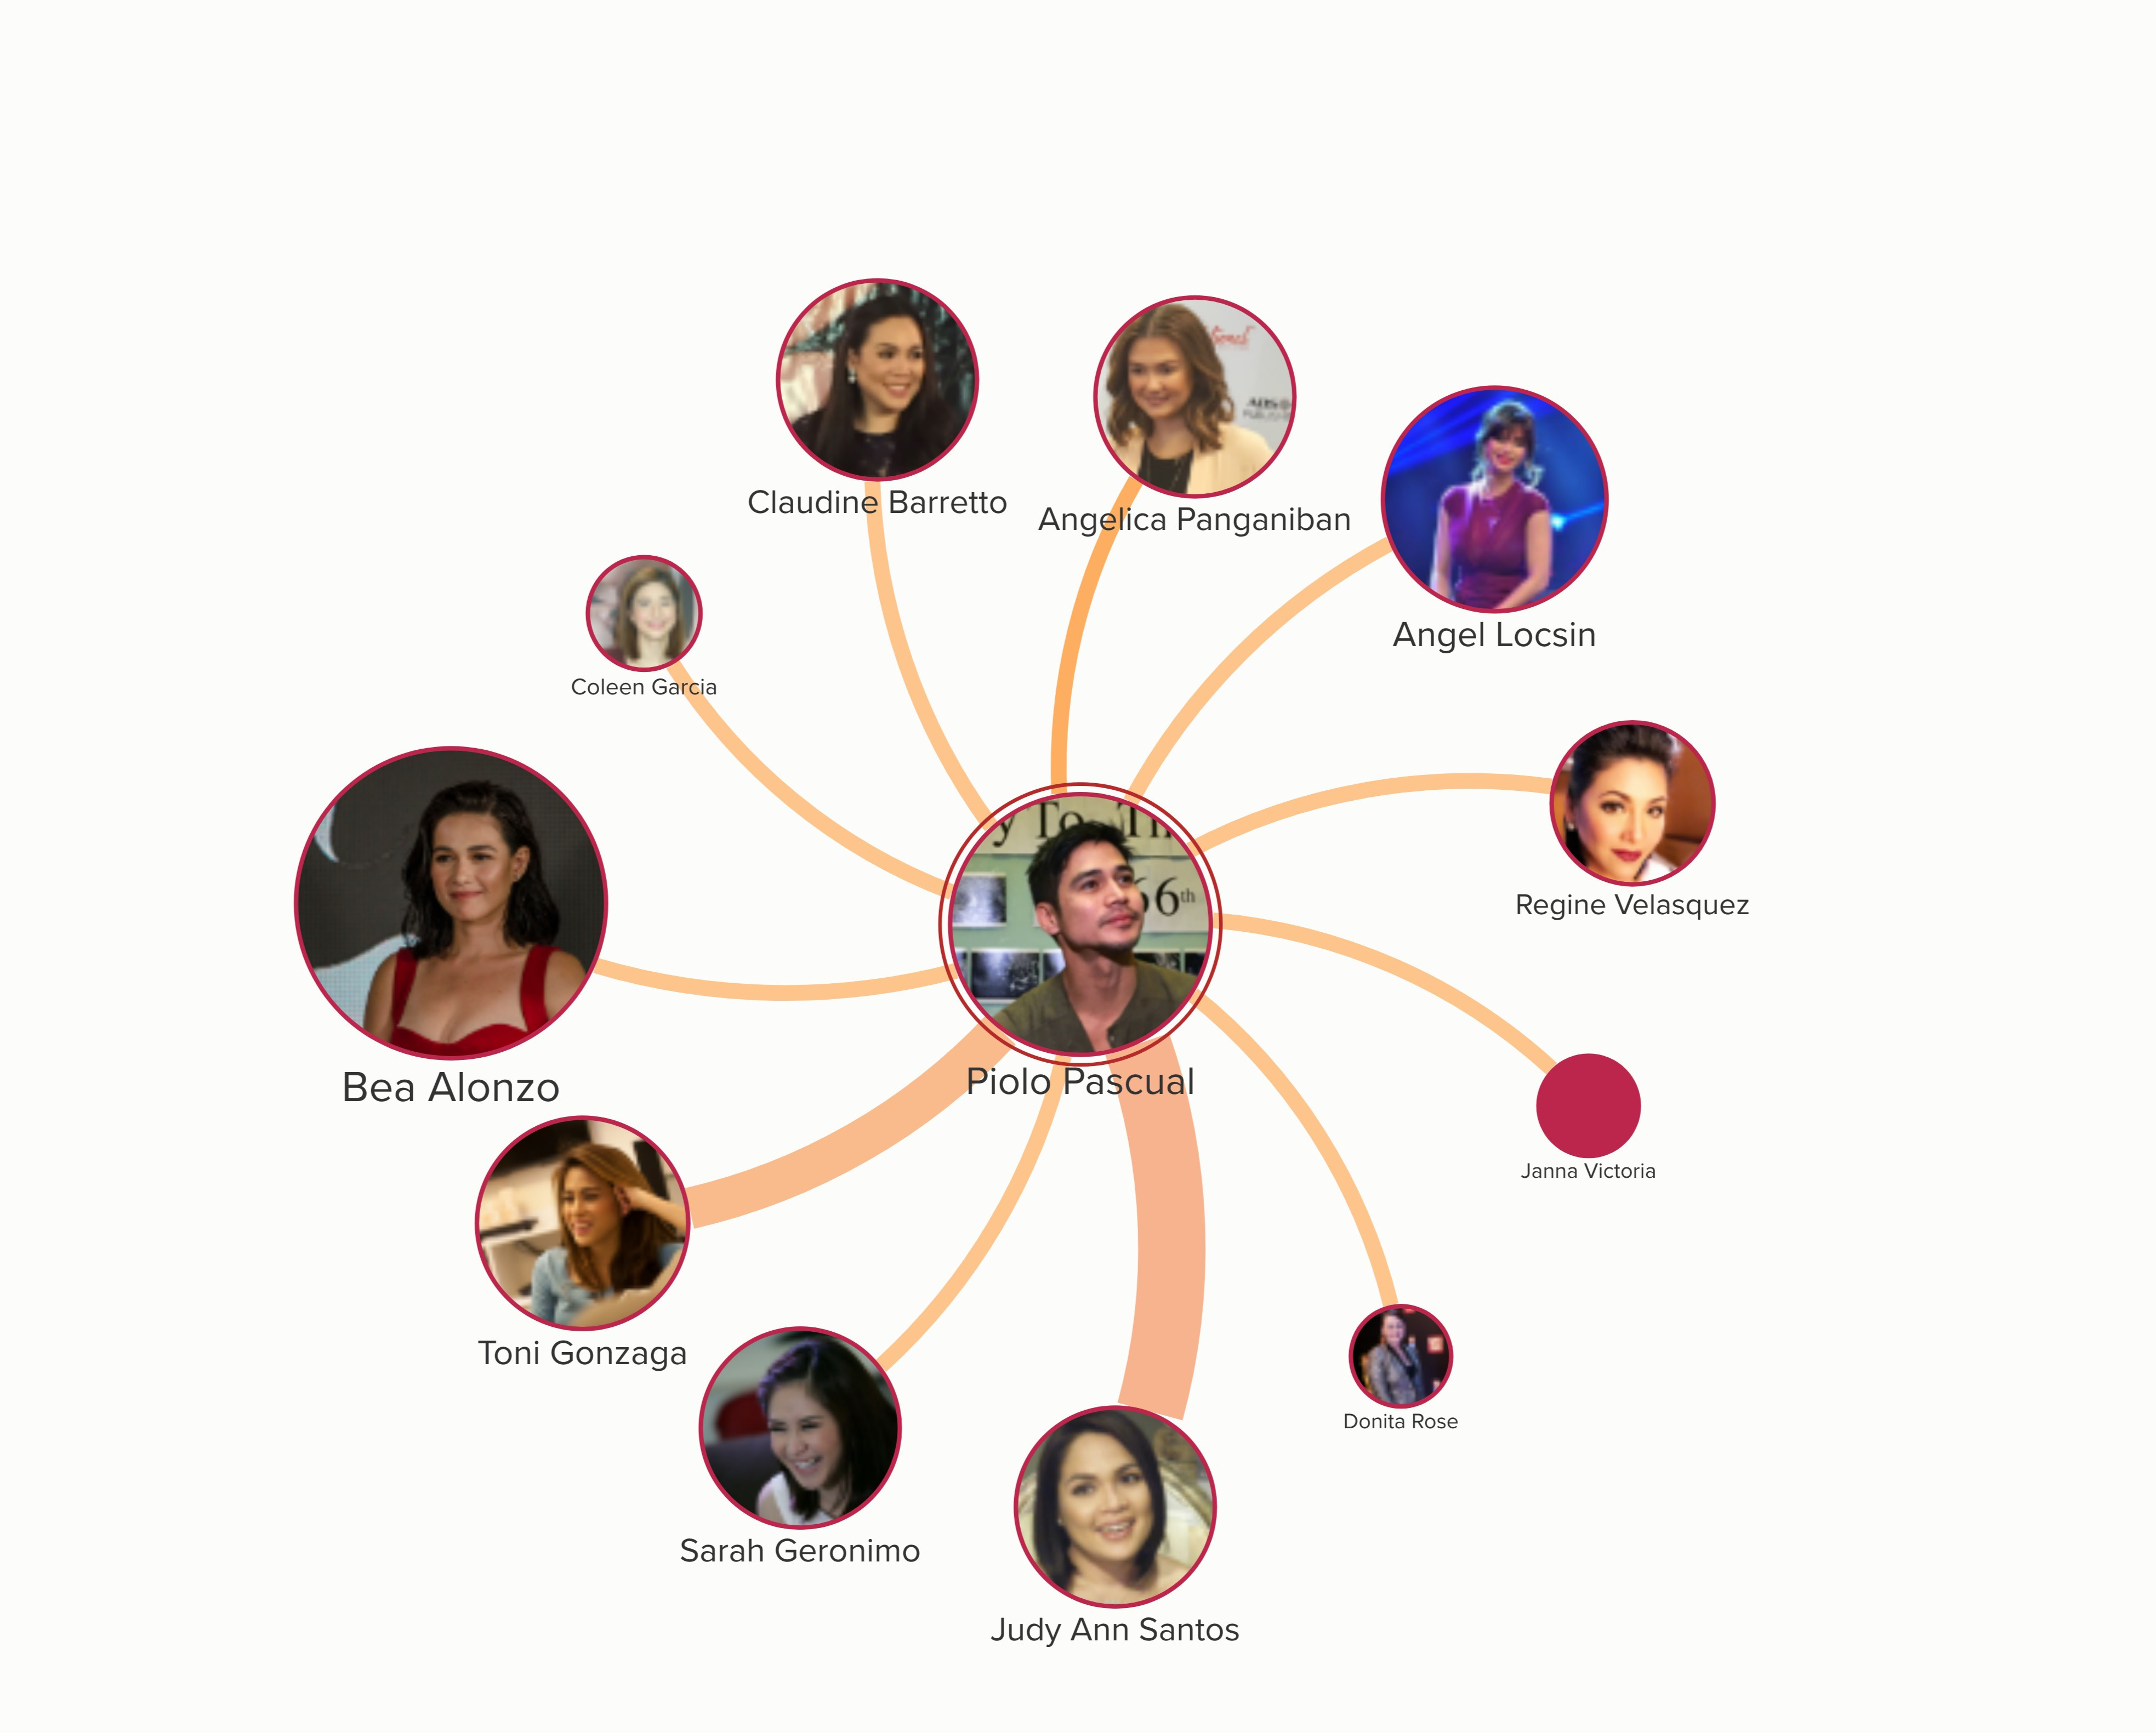 Piolo Pascual, after his love team with Judy Ann Santos in the early 2000s, has not maintained any long-term on-screen pairing. Overall, He has 11 unique love team connections.